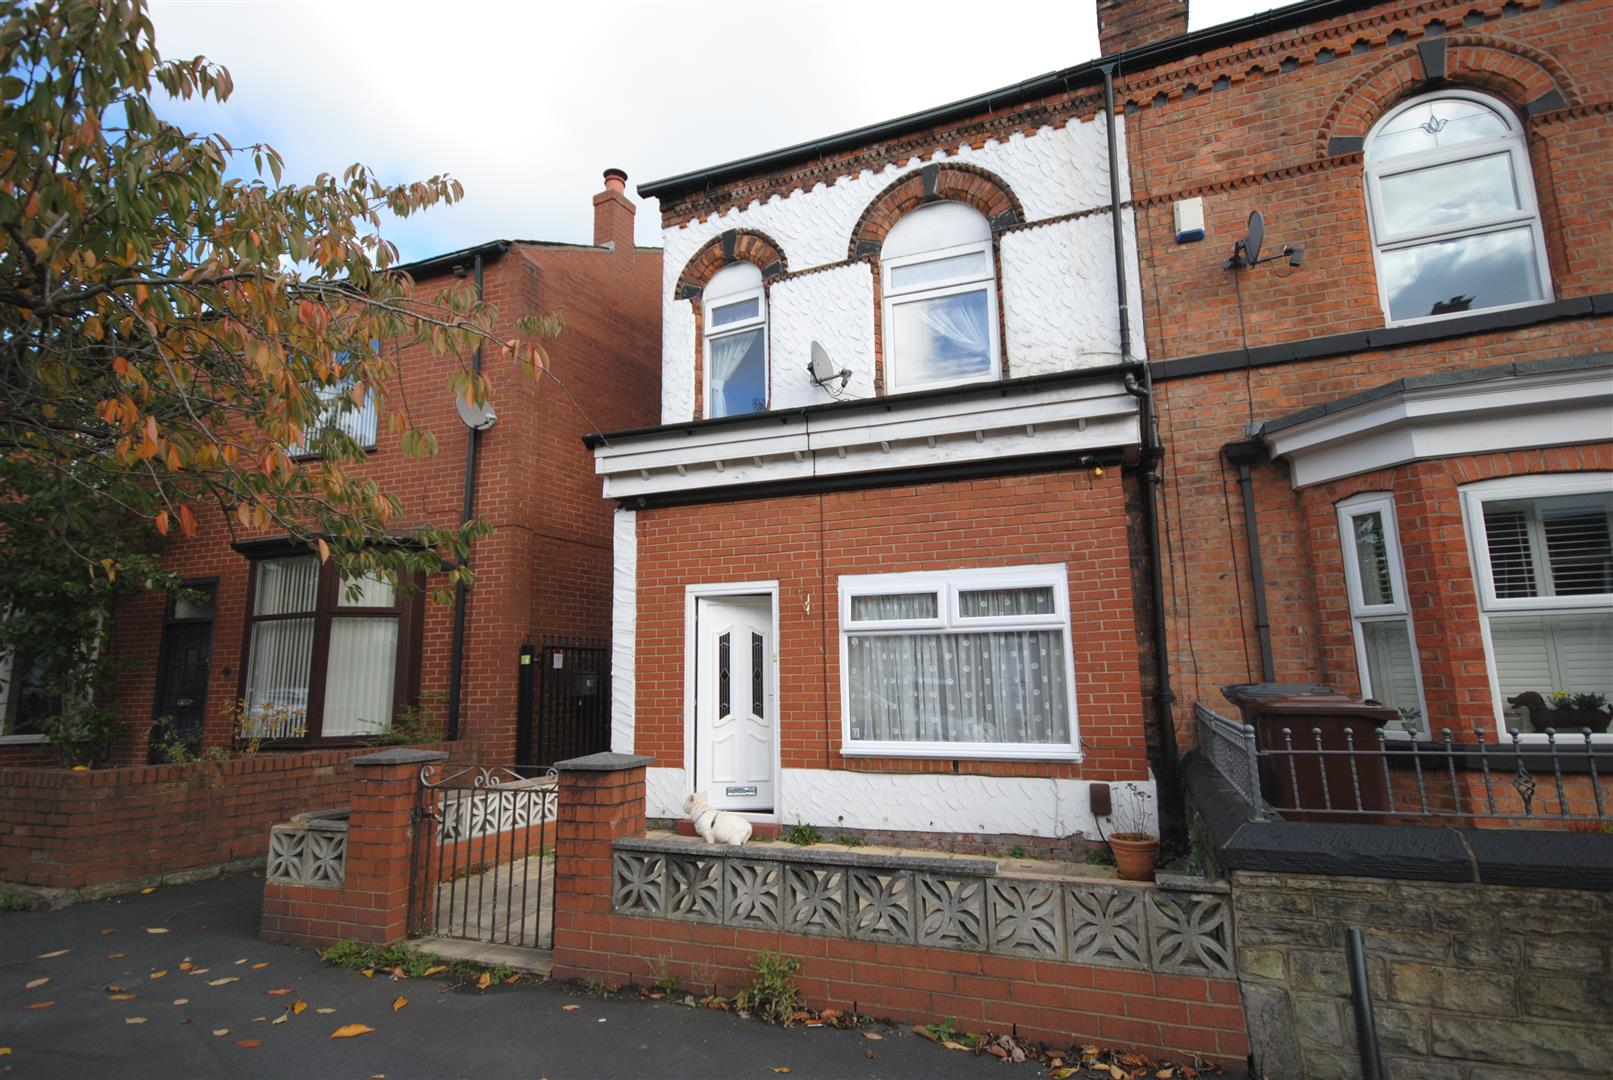 2 Bedrooms Terraced House for sale in Swinley Lane, Swinley, Wigan